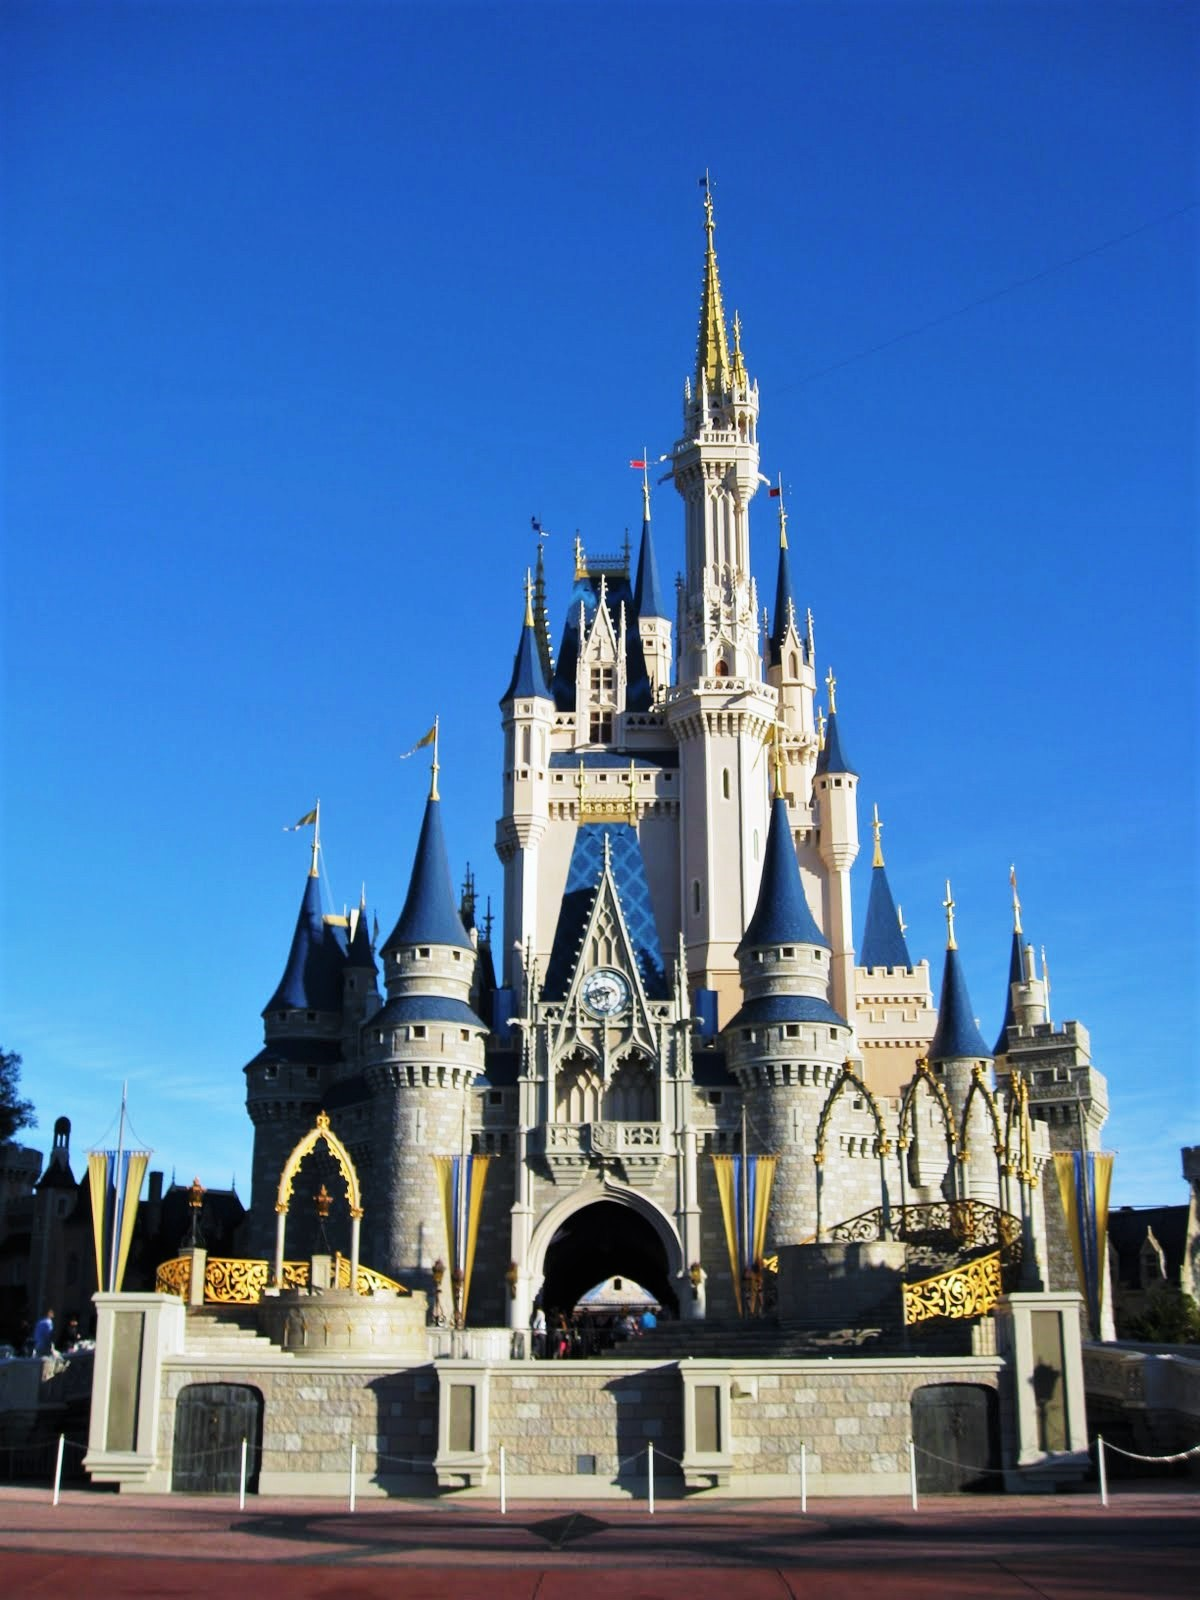 Cinderella Castle Disney Wiki Fandom Powered By Wikia